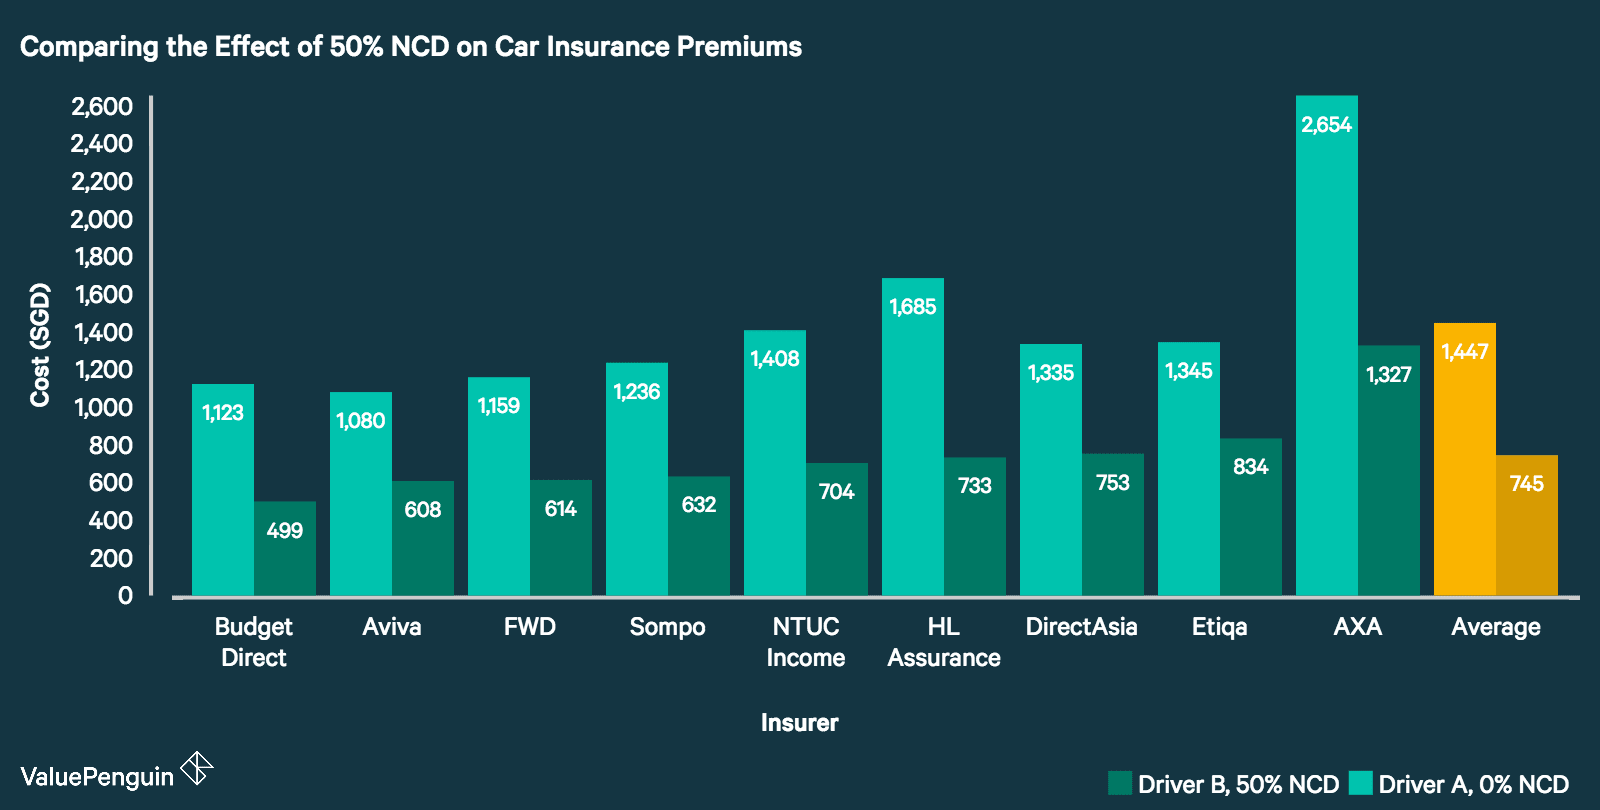 This graph compares the premiums quoted to a driver with a NCD of 0% compared to the premiums quoted to a driver with a NCD of 50%. HL Assurance's premiums are quite competitive.